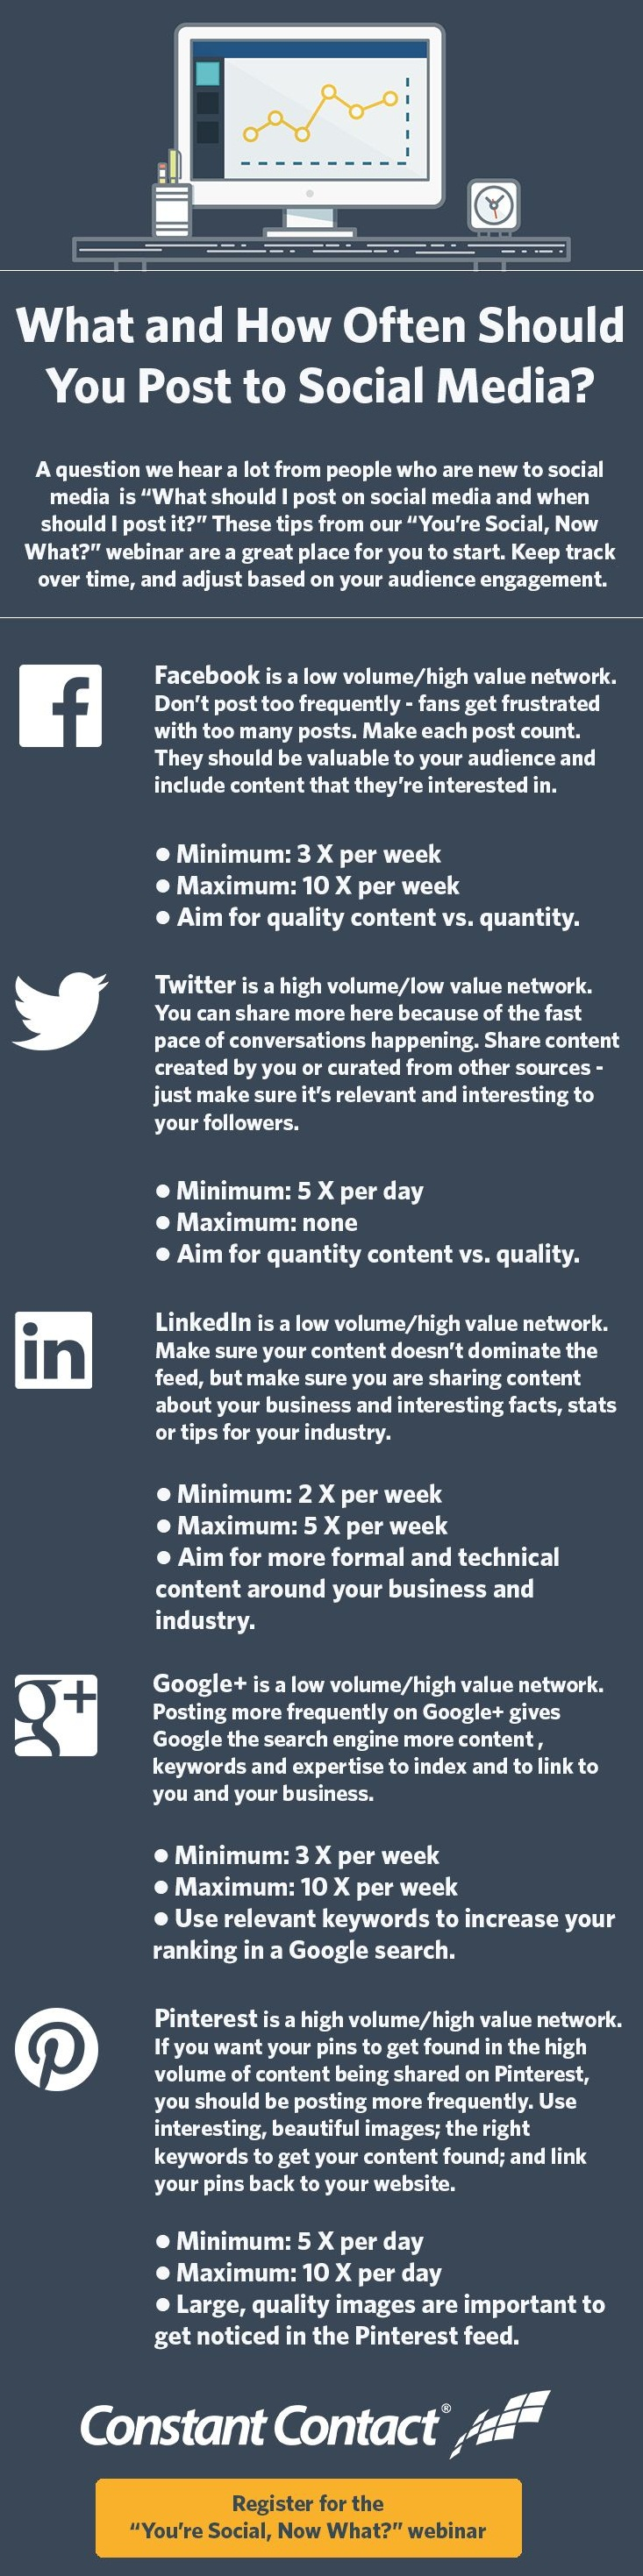 When-and-how-Often-to-Post-to-Social-Media-infographic